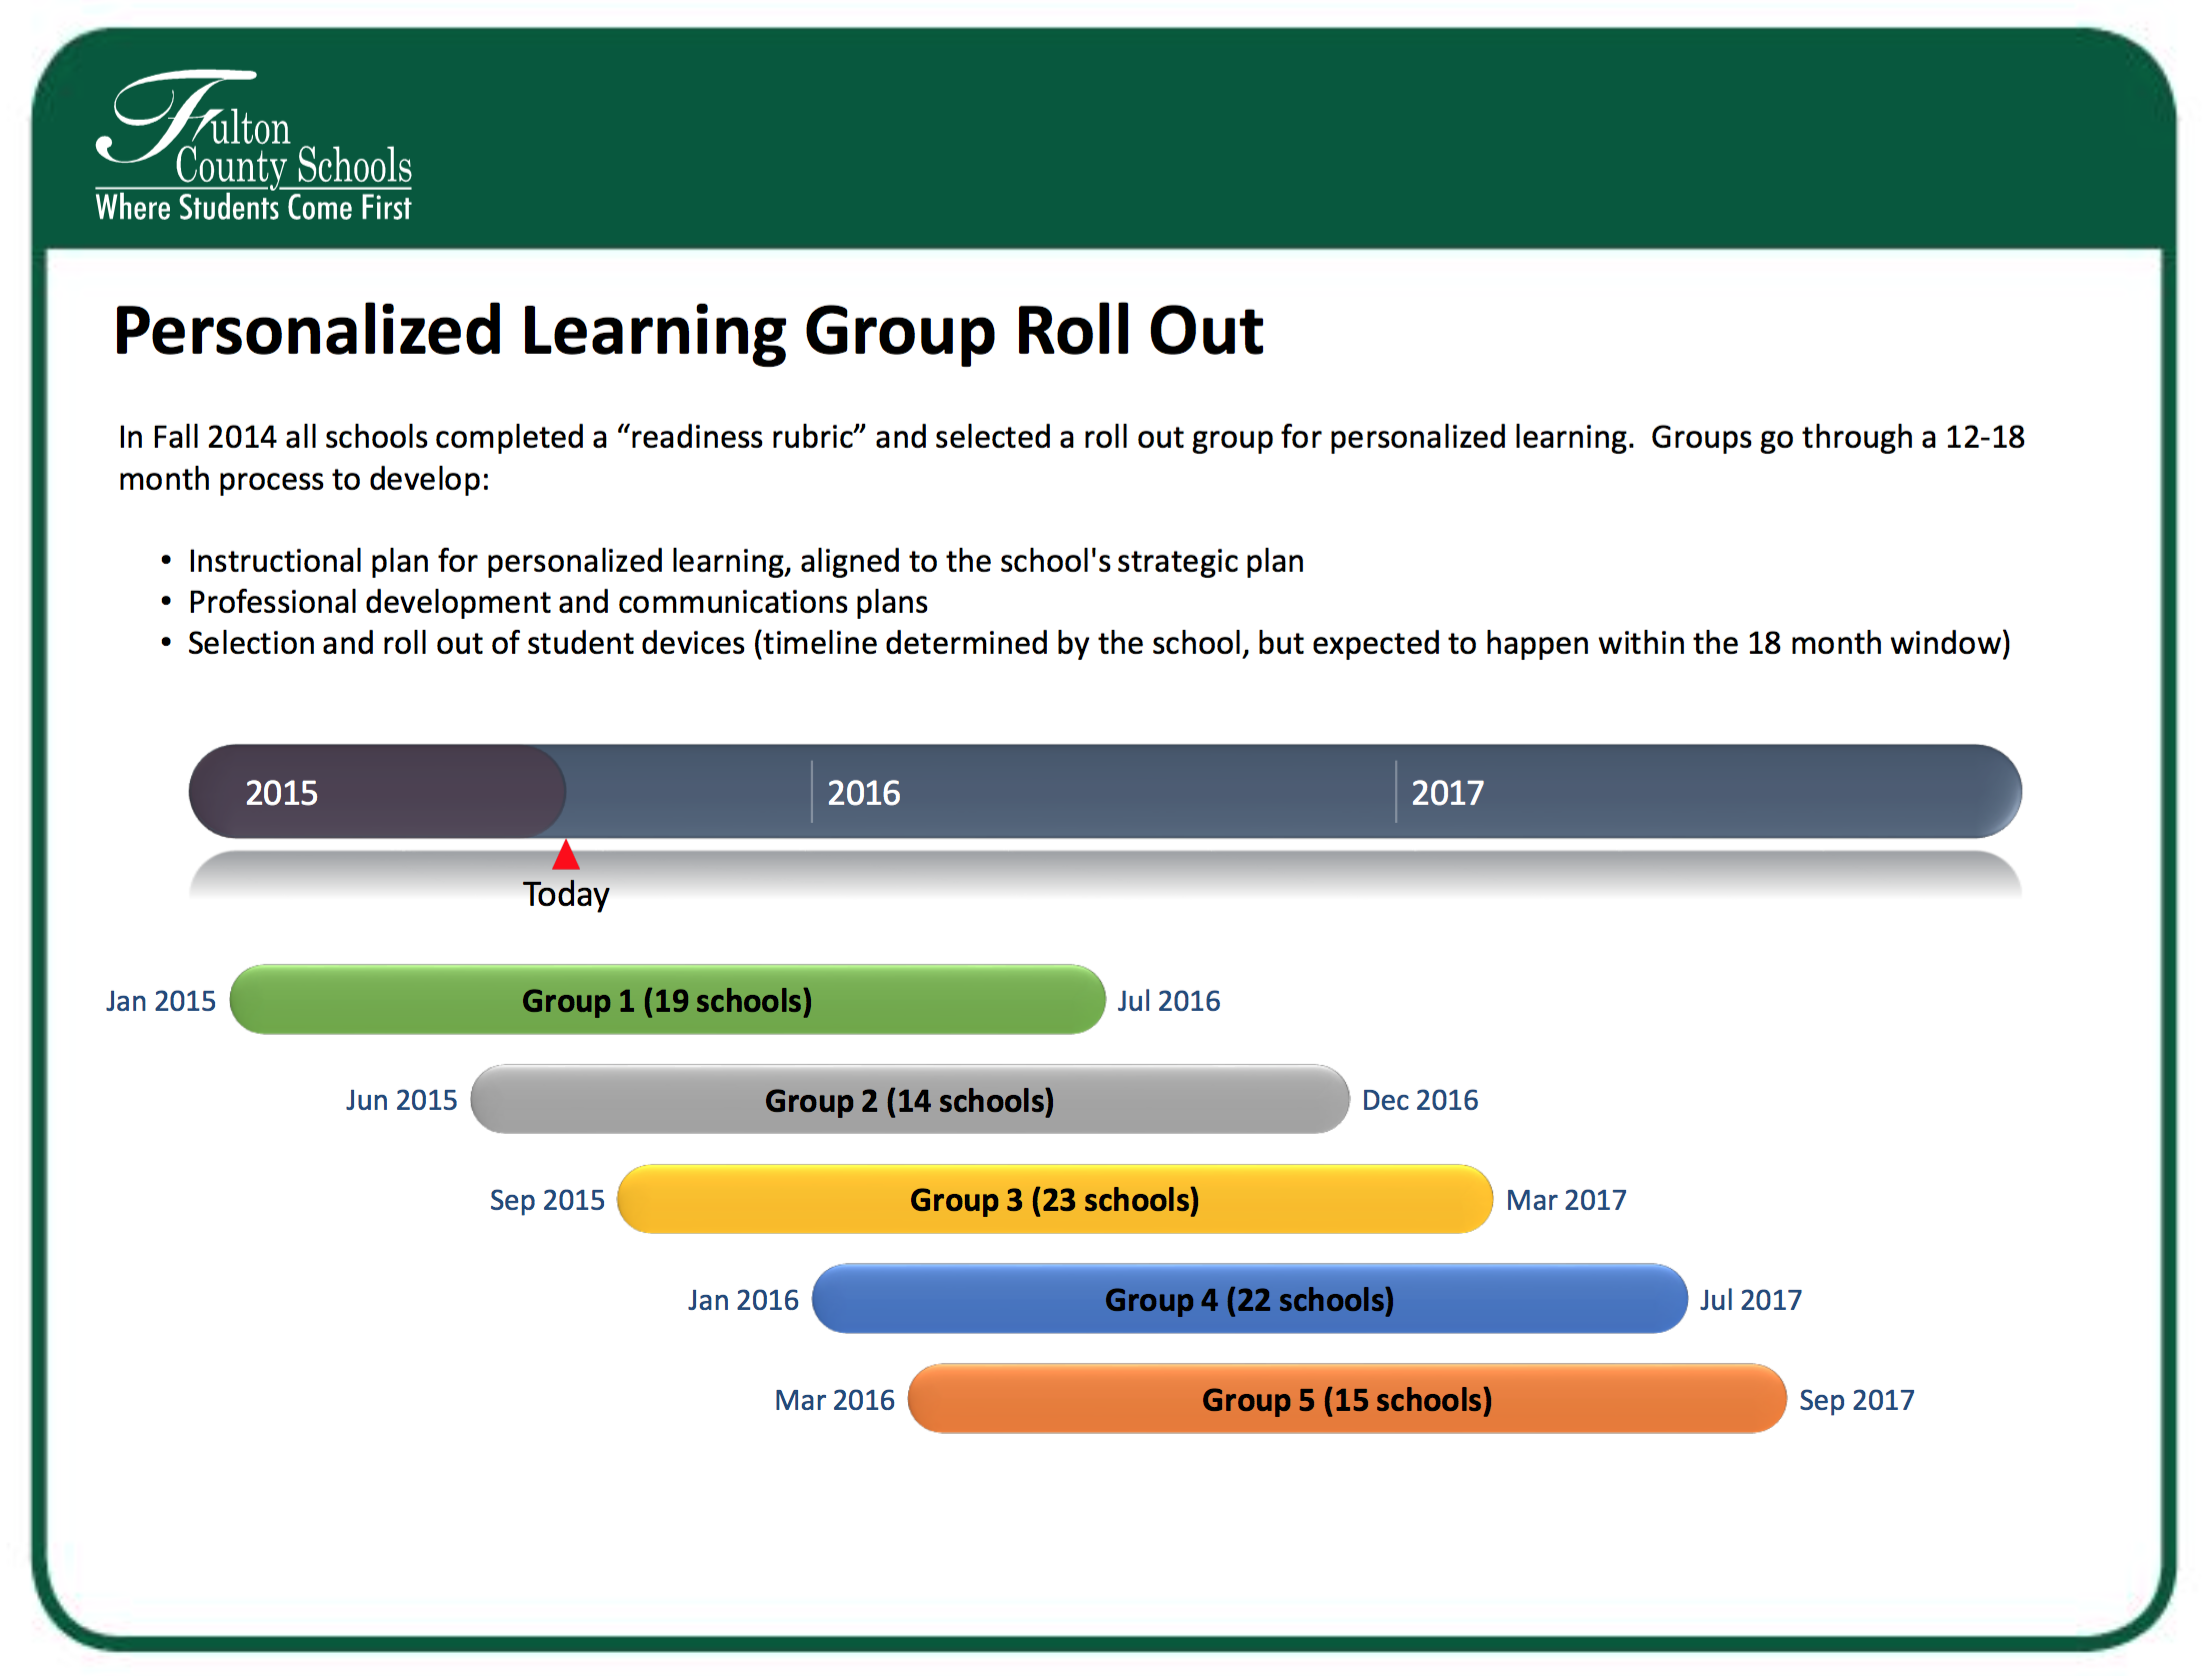 Fulton Personalized Learning Group Roll Out (click the image to download the PDF)